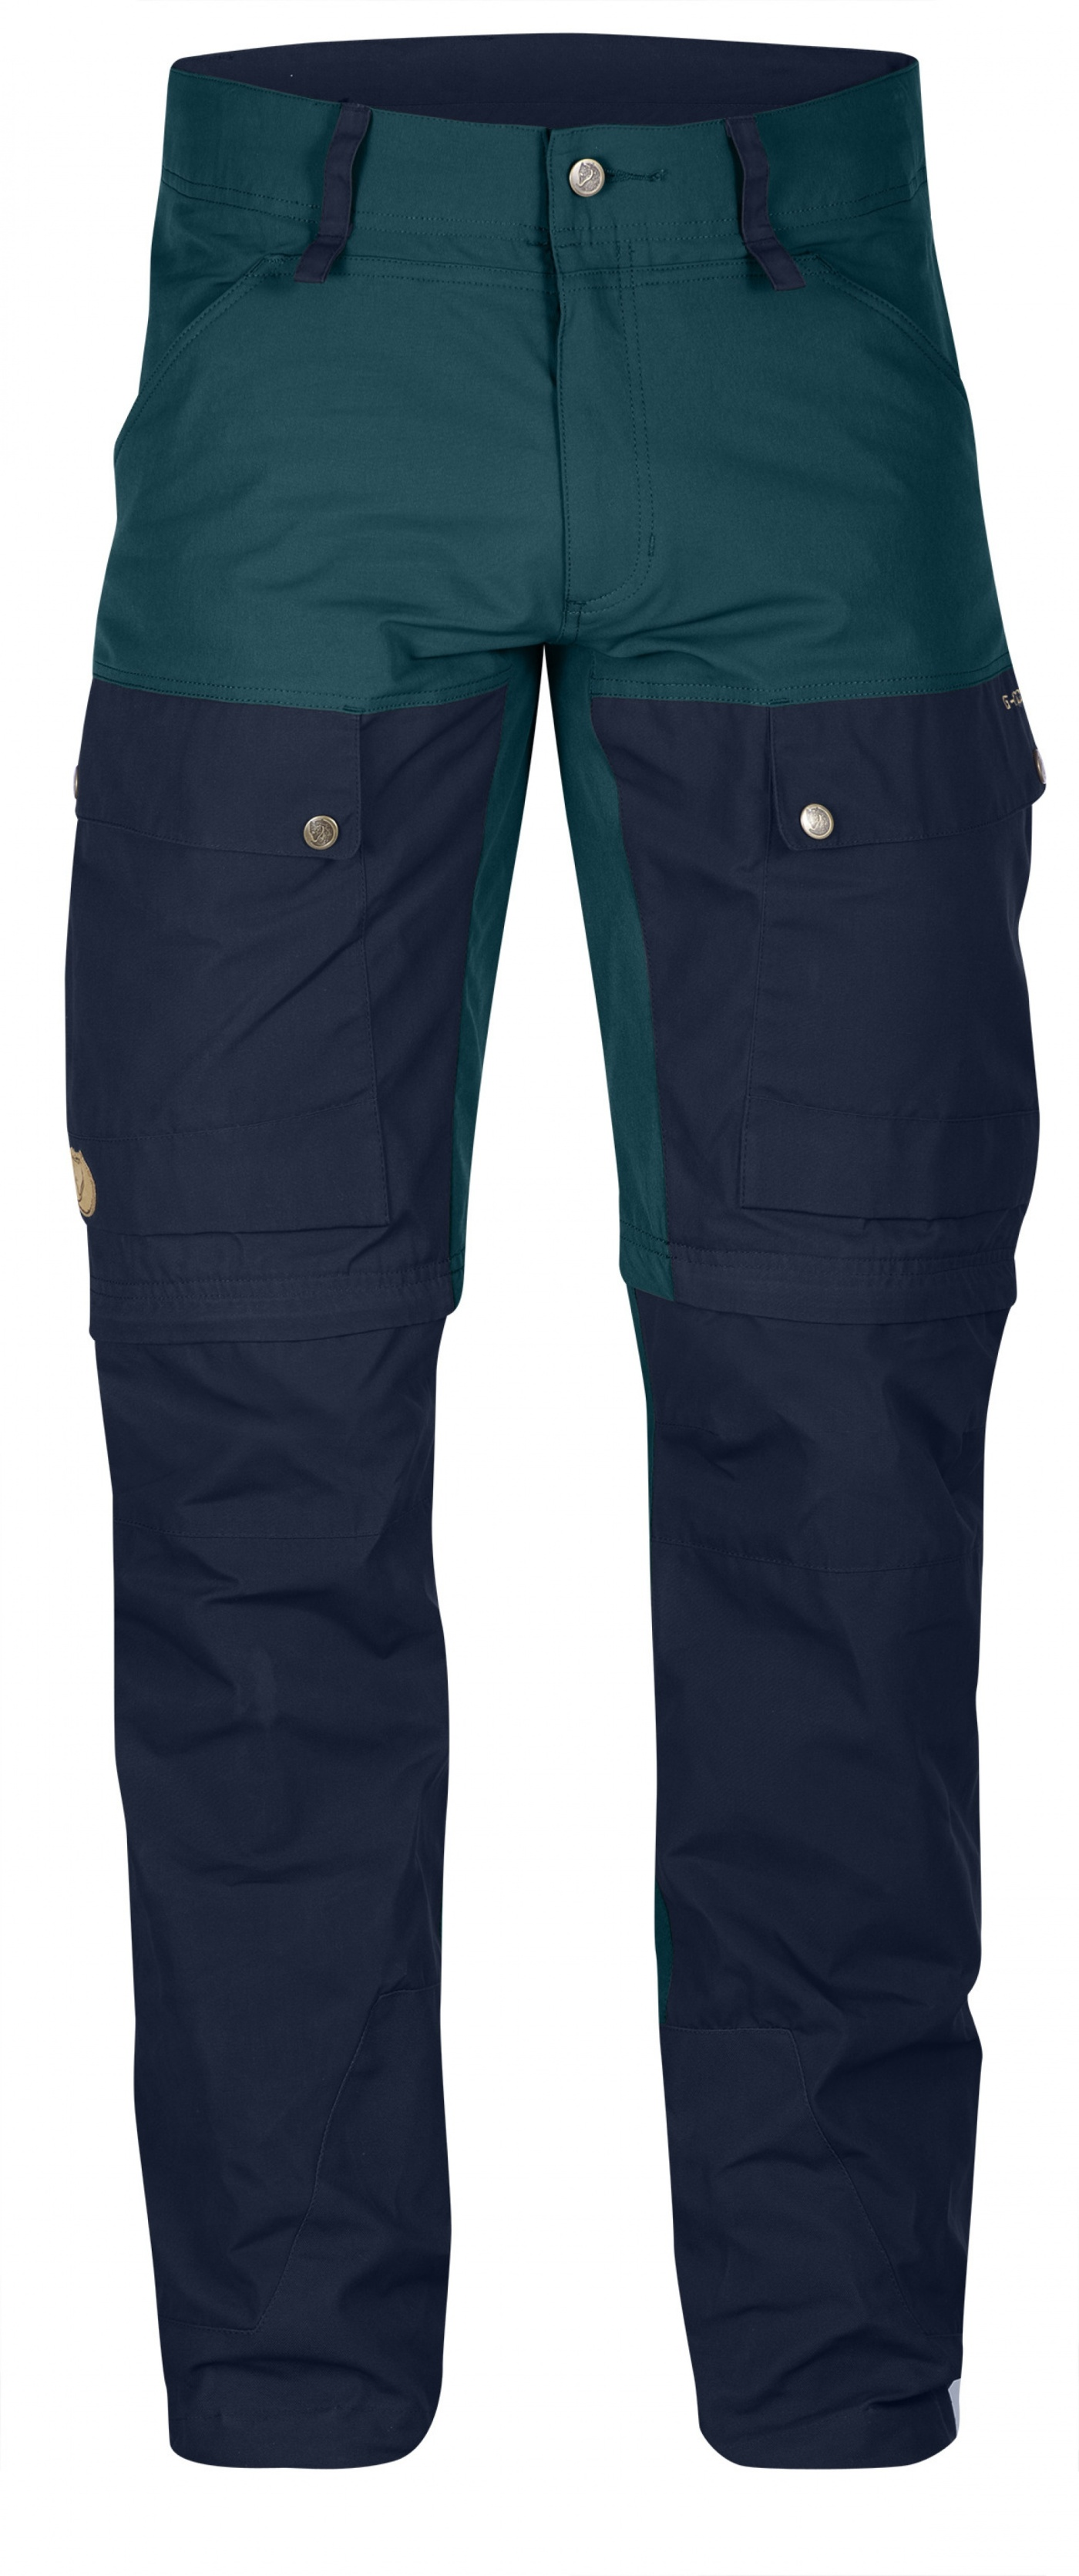 FjallRaven Keb Gaiter Trousers Regular Glacier Green-Dark Navy-30